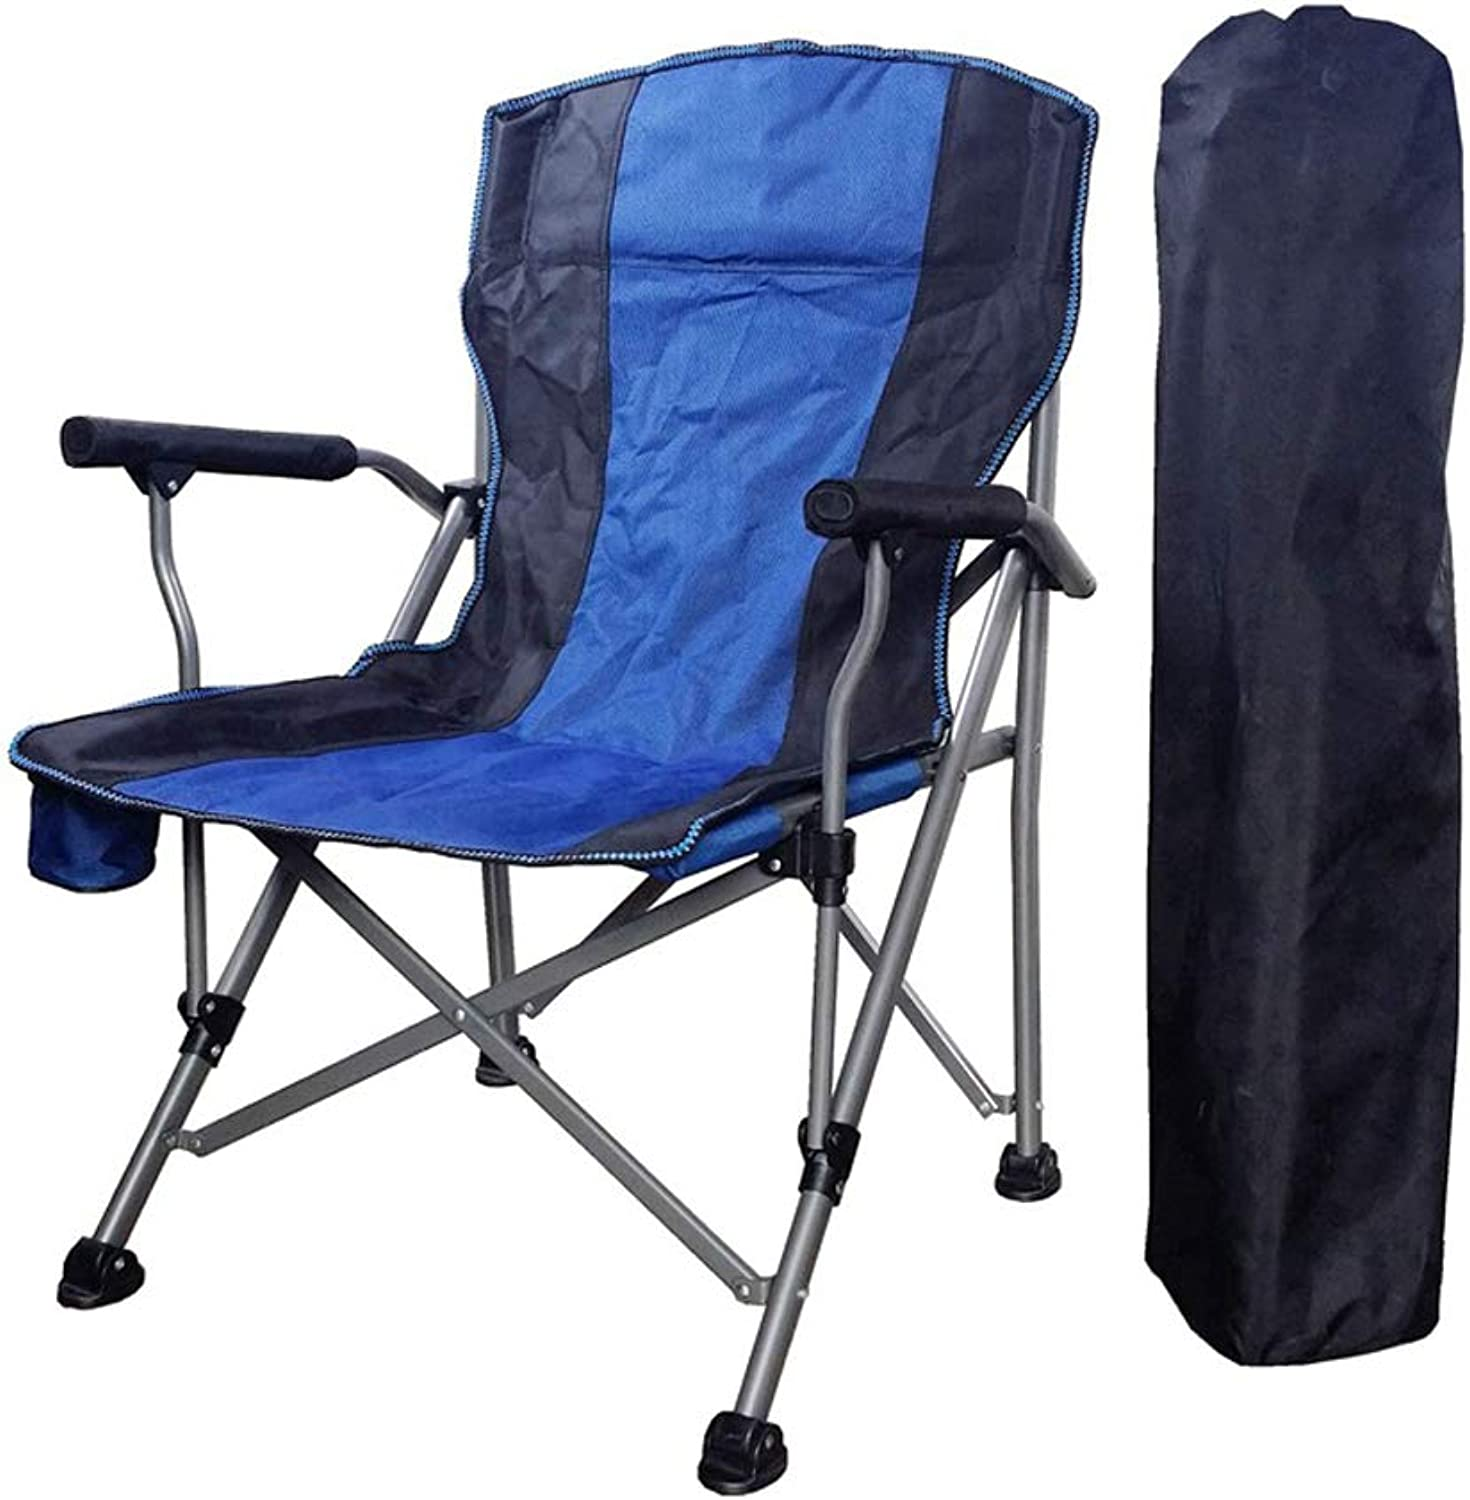 Camping Chair Thickened Oxford Cloth with Cup Holder Armrest Pocket Headrest Breathable Folding Portable Oversize Heavy Duty, Supports 463 lbs,blueeblack